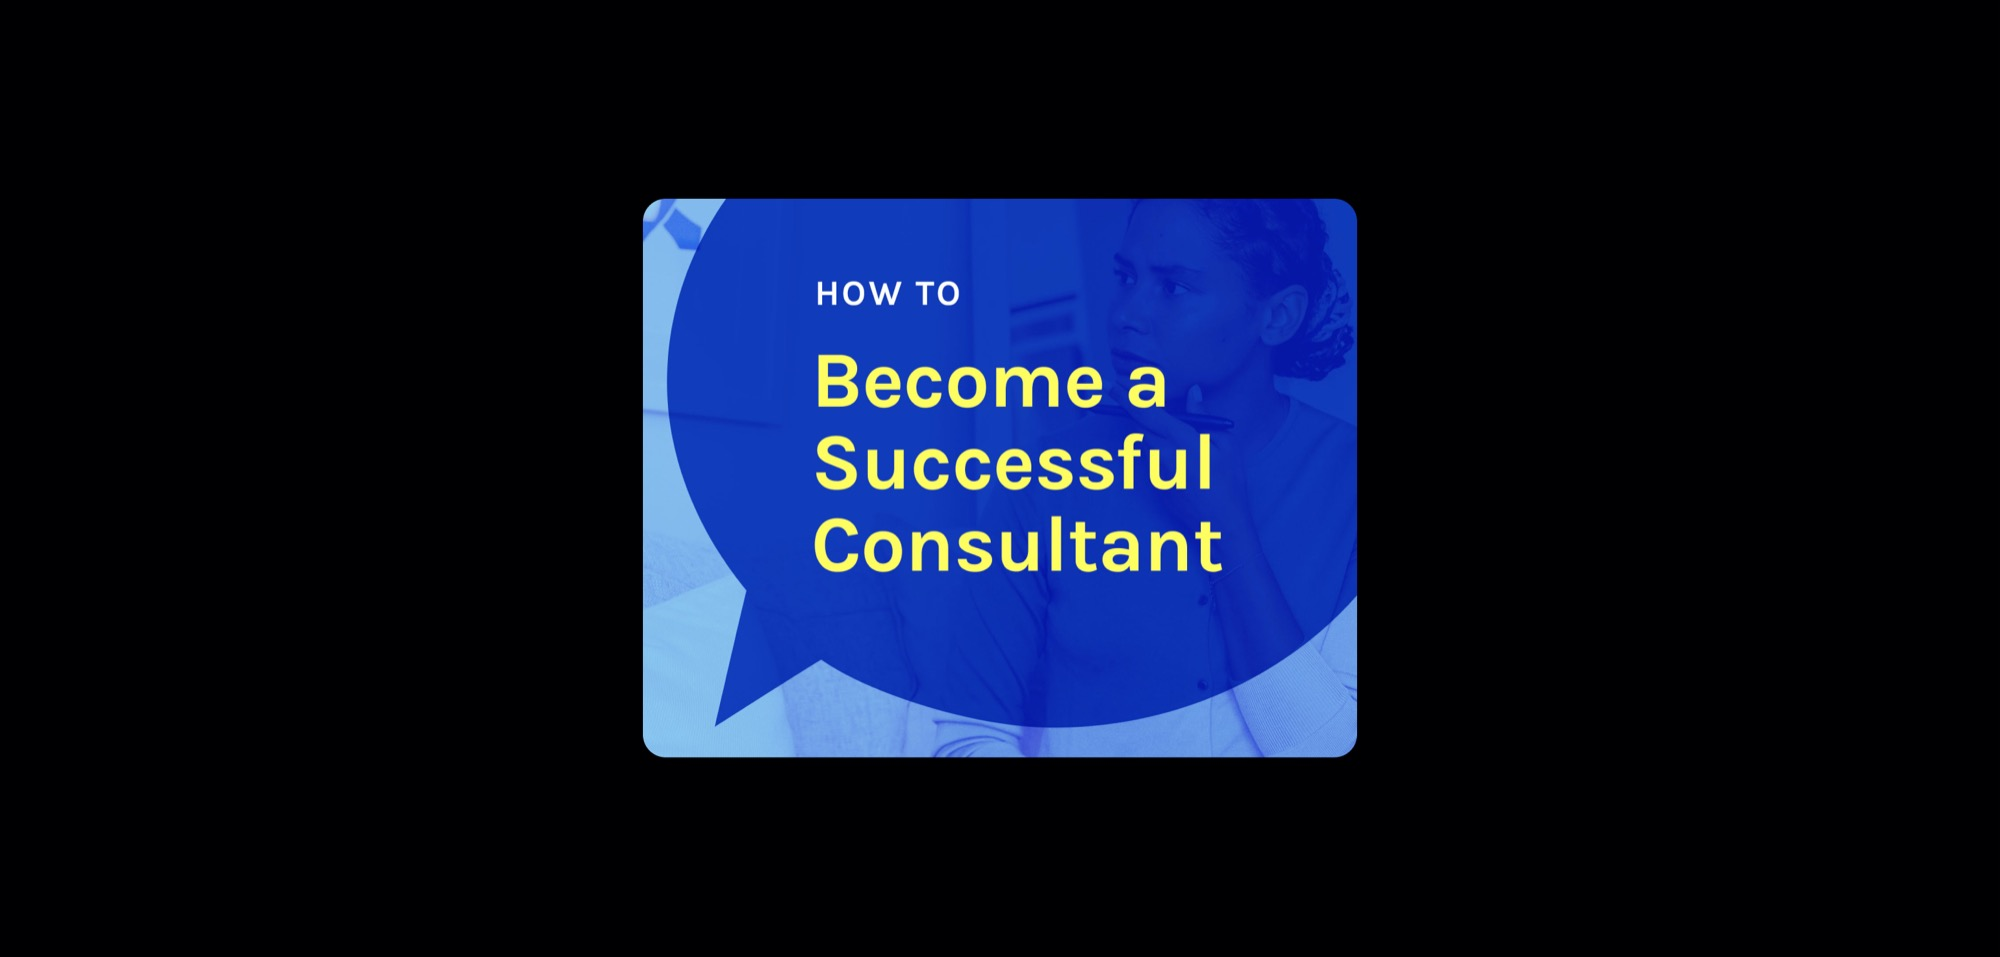 6 Pro Tips to be a Successful Consultant